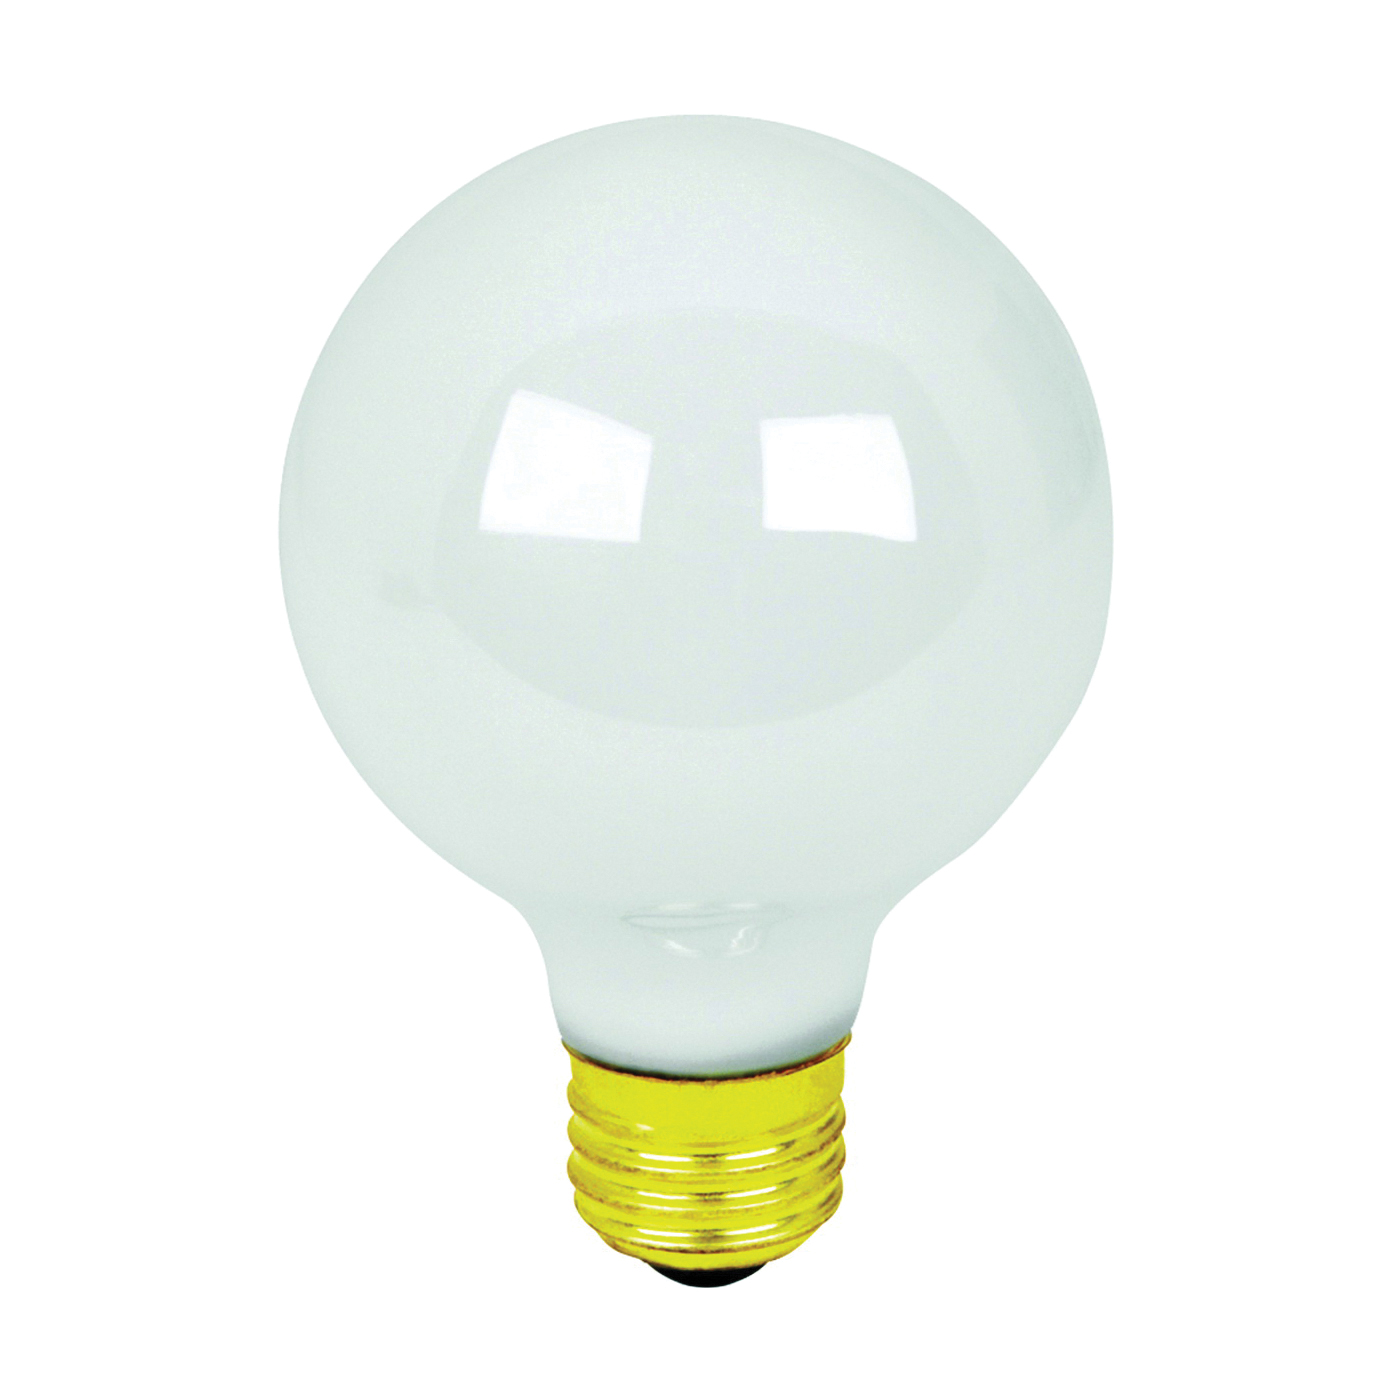 Picture of Feit Electric Q40G25/W Halogen Lamp, 40 W, Medium E26 Lamp Base, G25 Lamp, 600 Lumens, 3000 K Color Temp